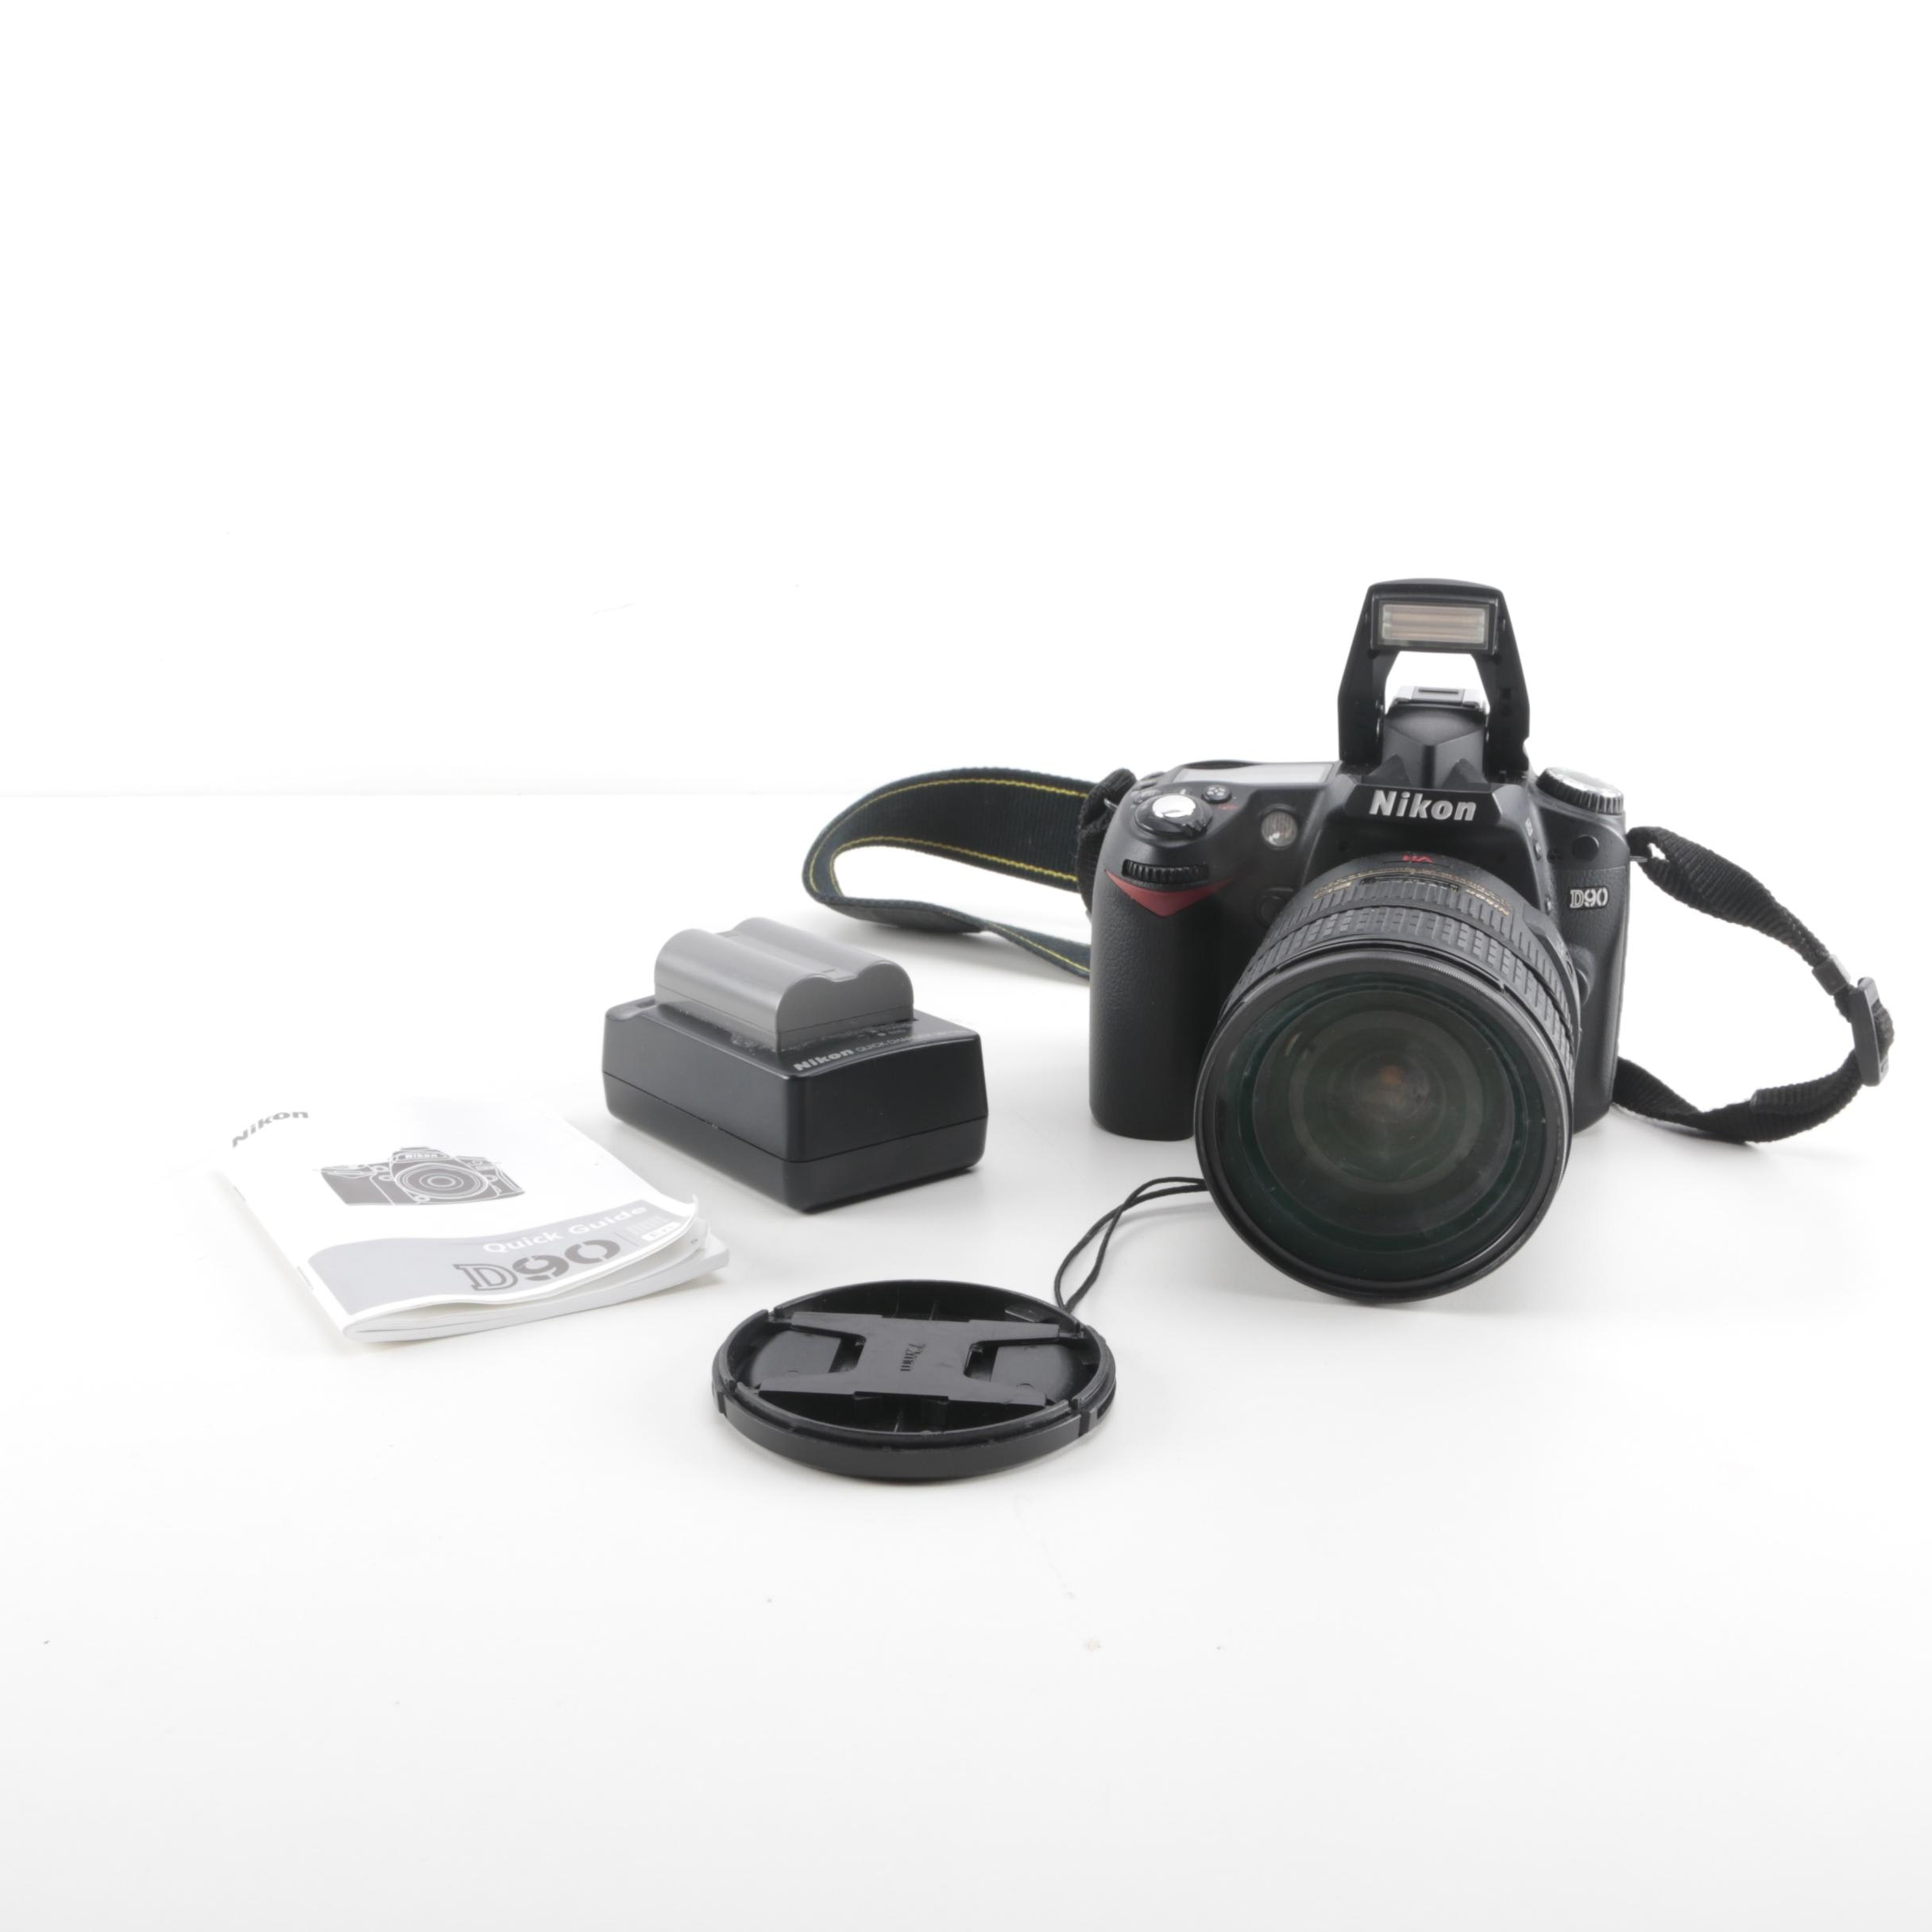 Nikon DSLR Camera With Strap, Batteries, and Charger